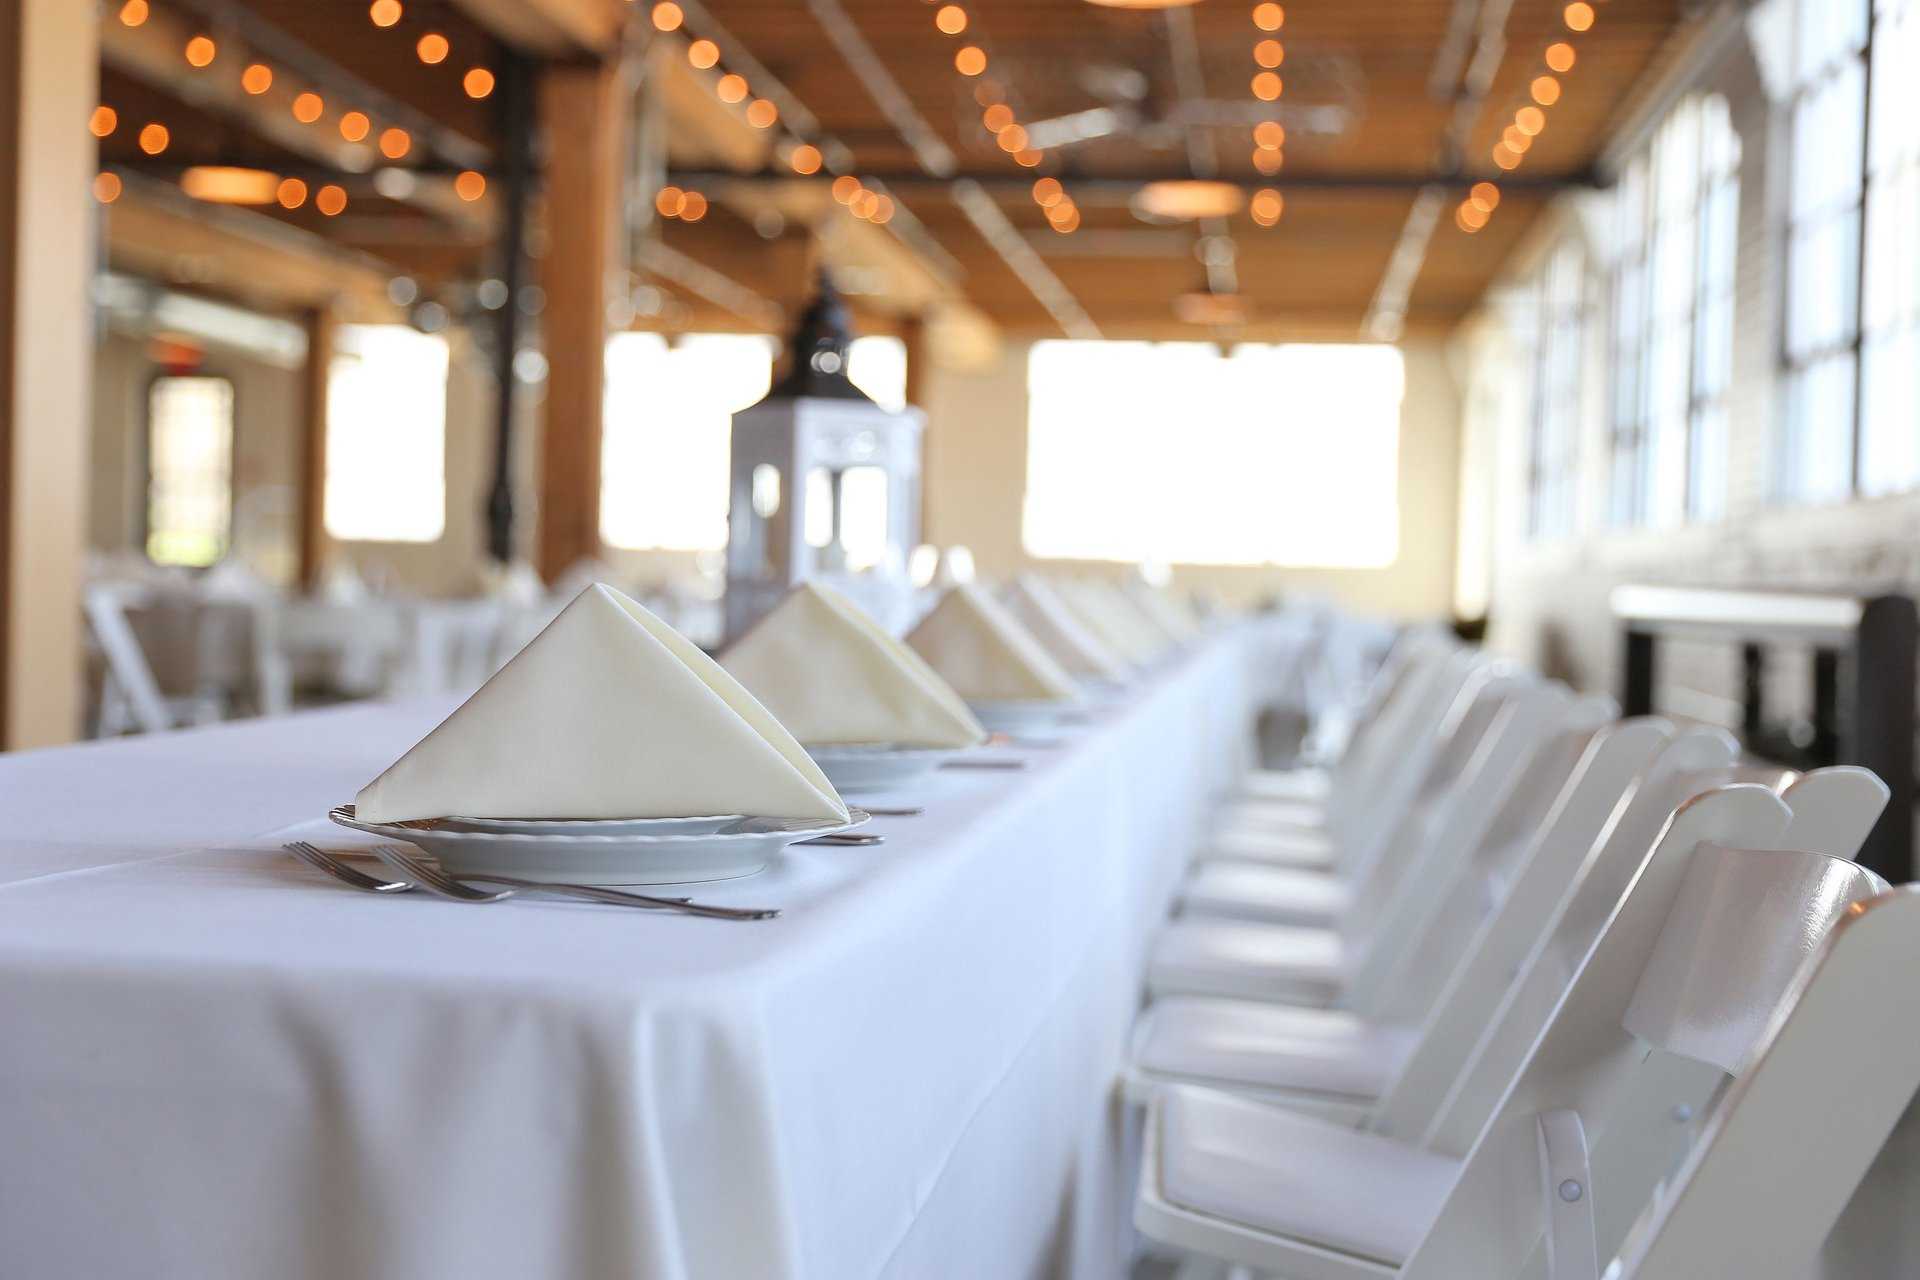 chair cover rentals baton rouge replacement patio cushions sale premier culinary school in the south louisiana